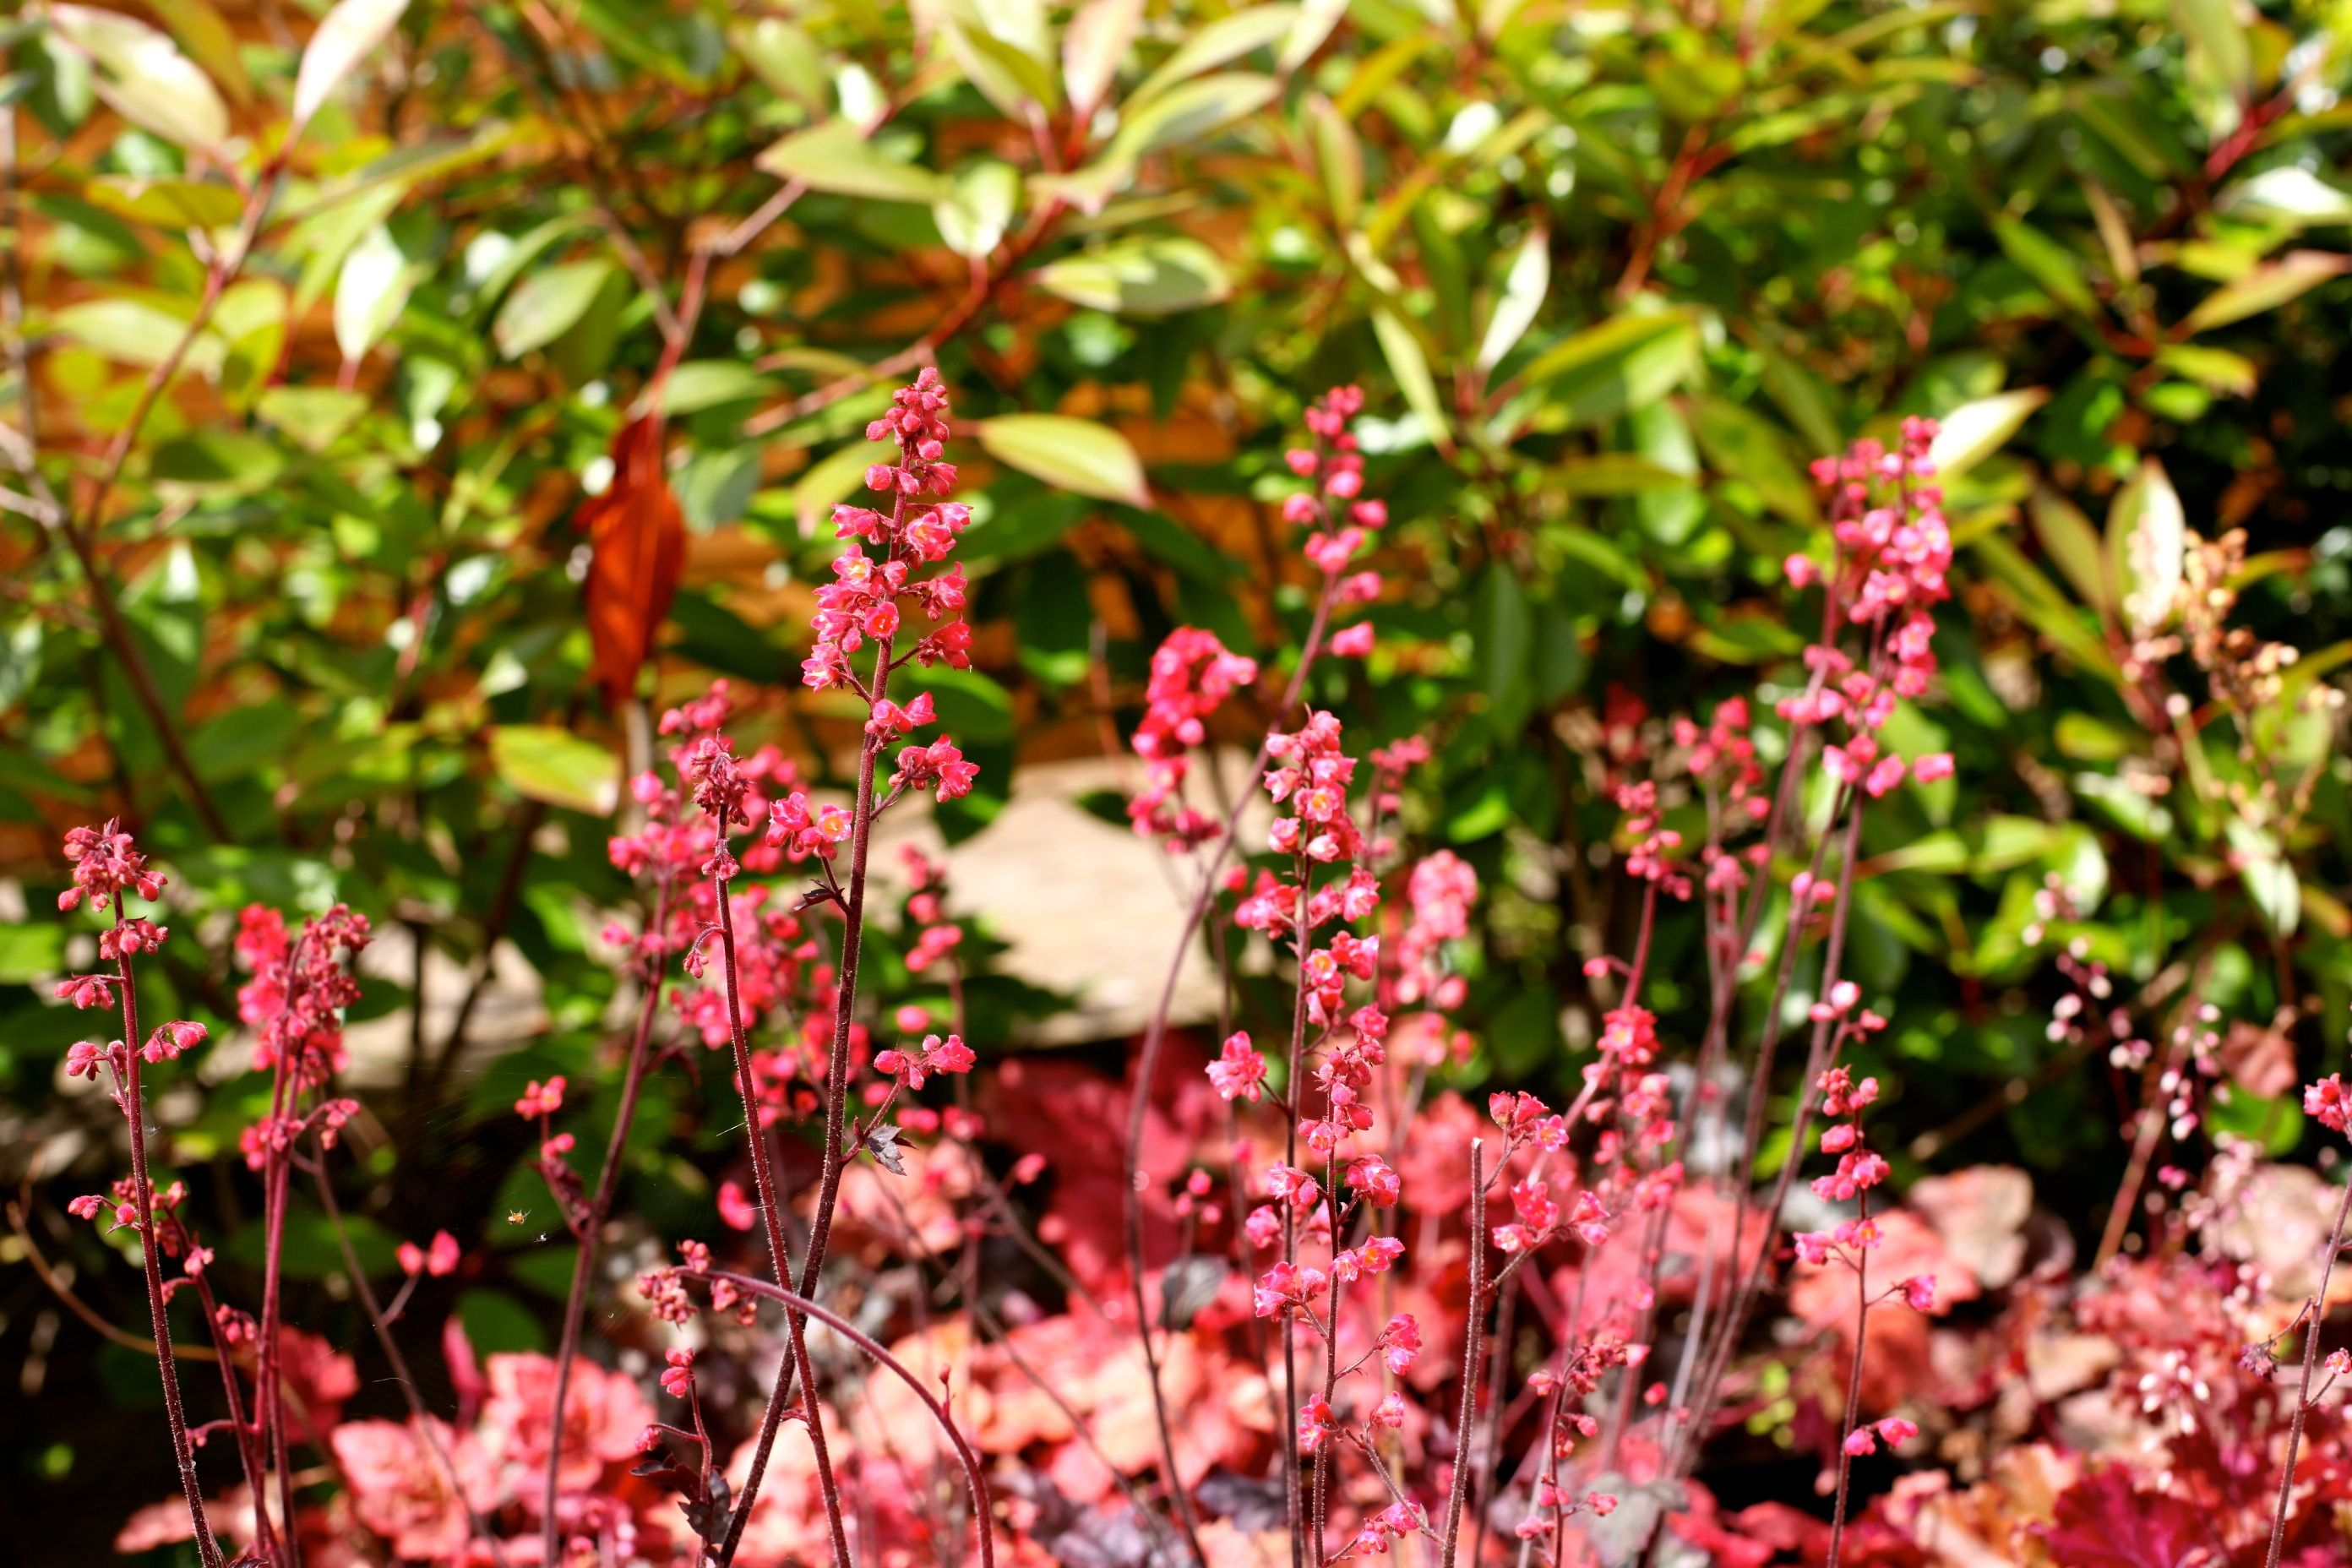 Heuchera 'Hollywood' Dense spikes of coralred blooms